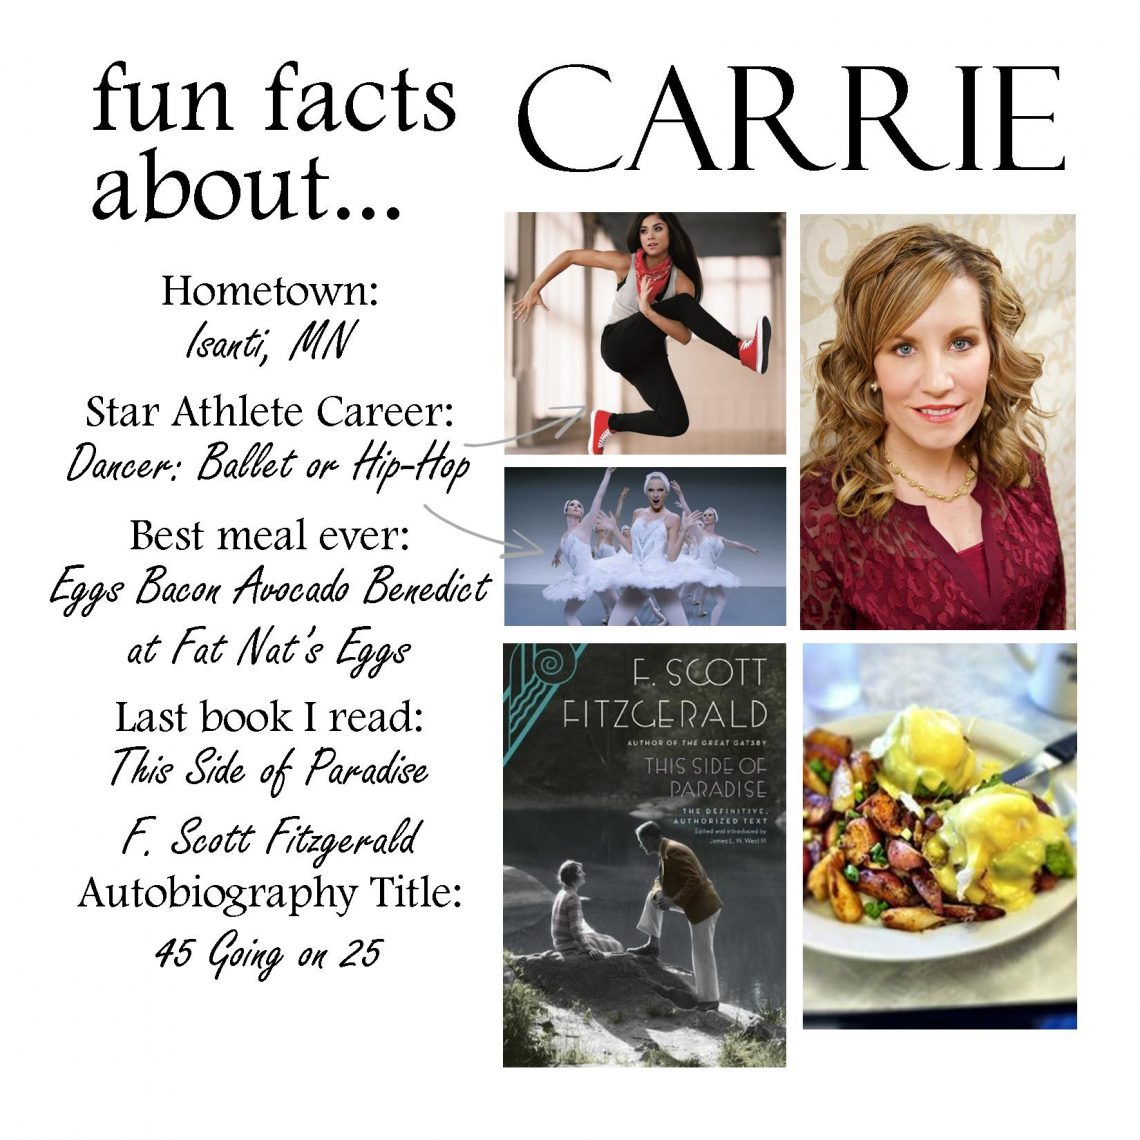 carrie-fun-fact